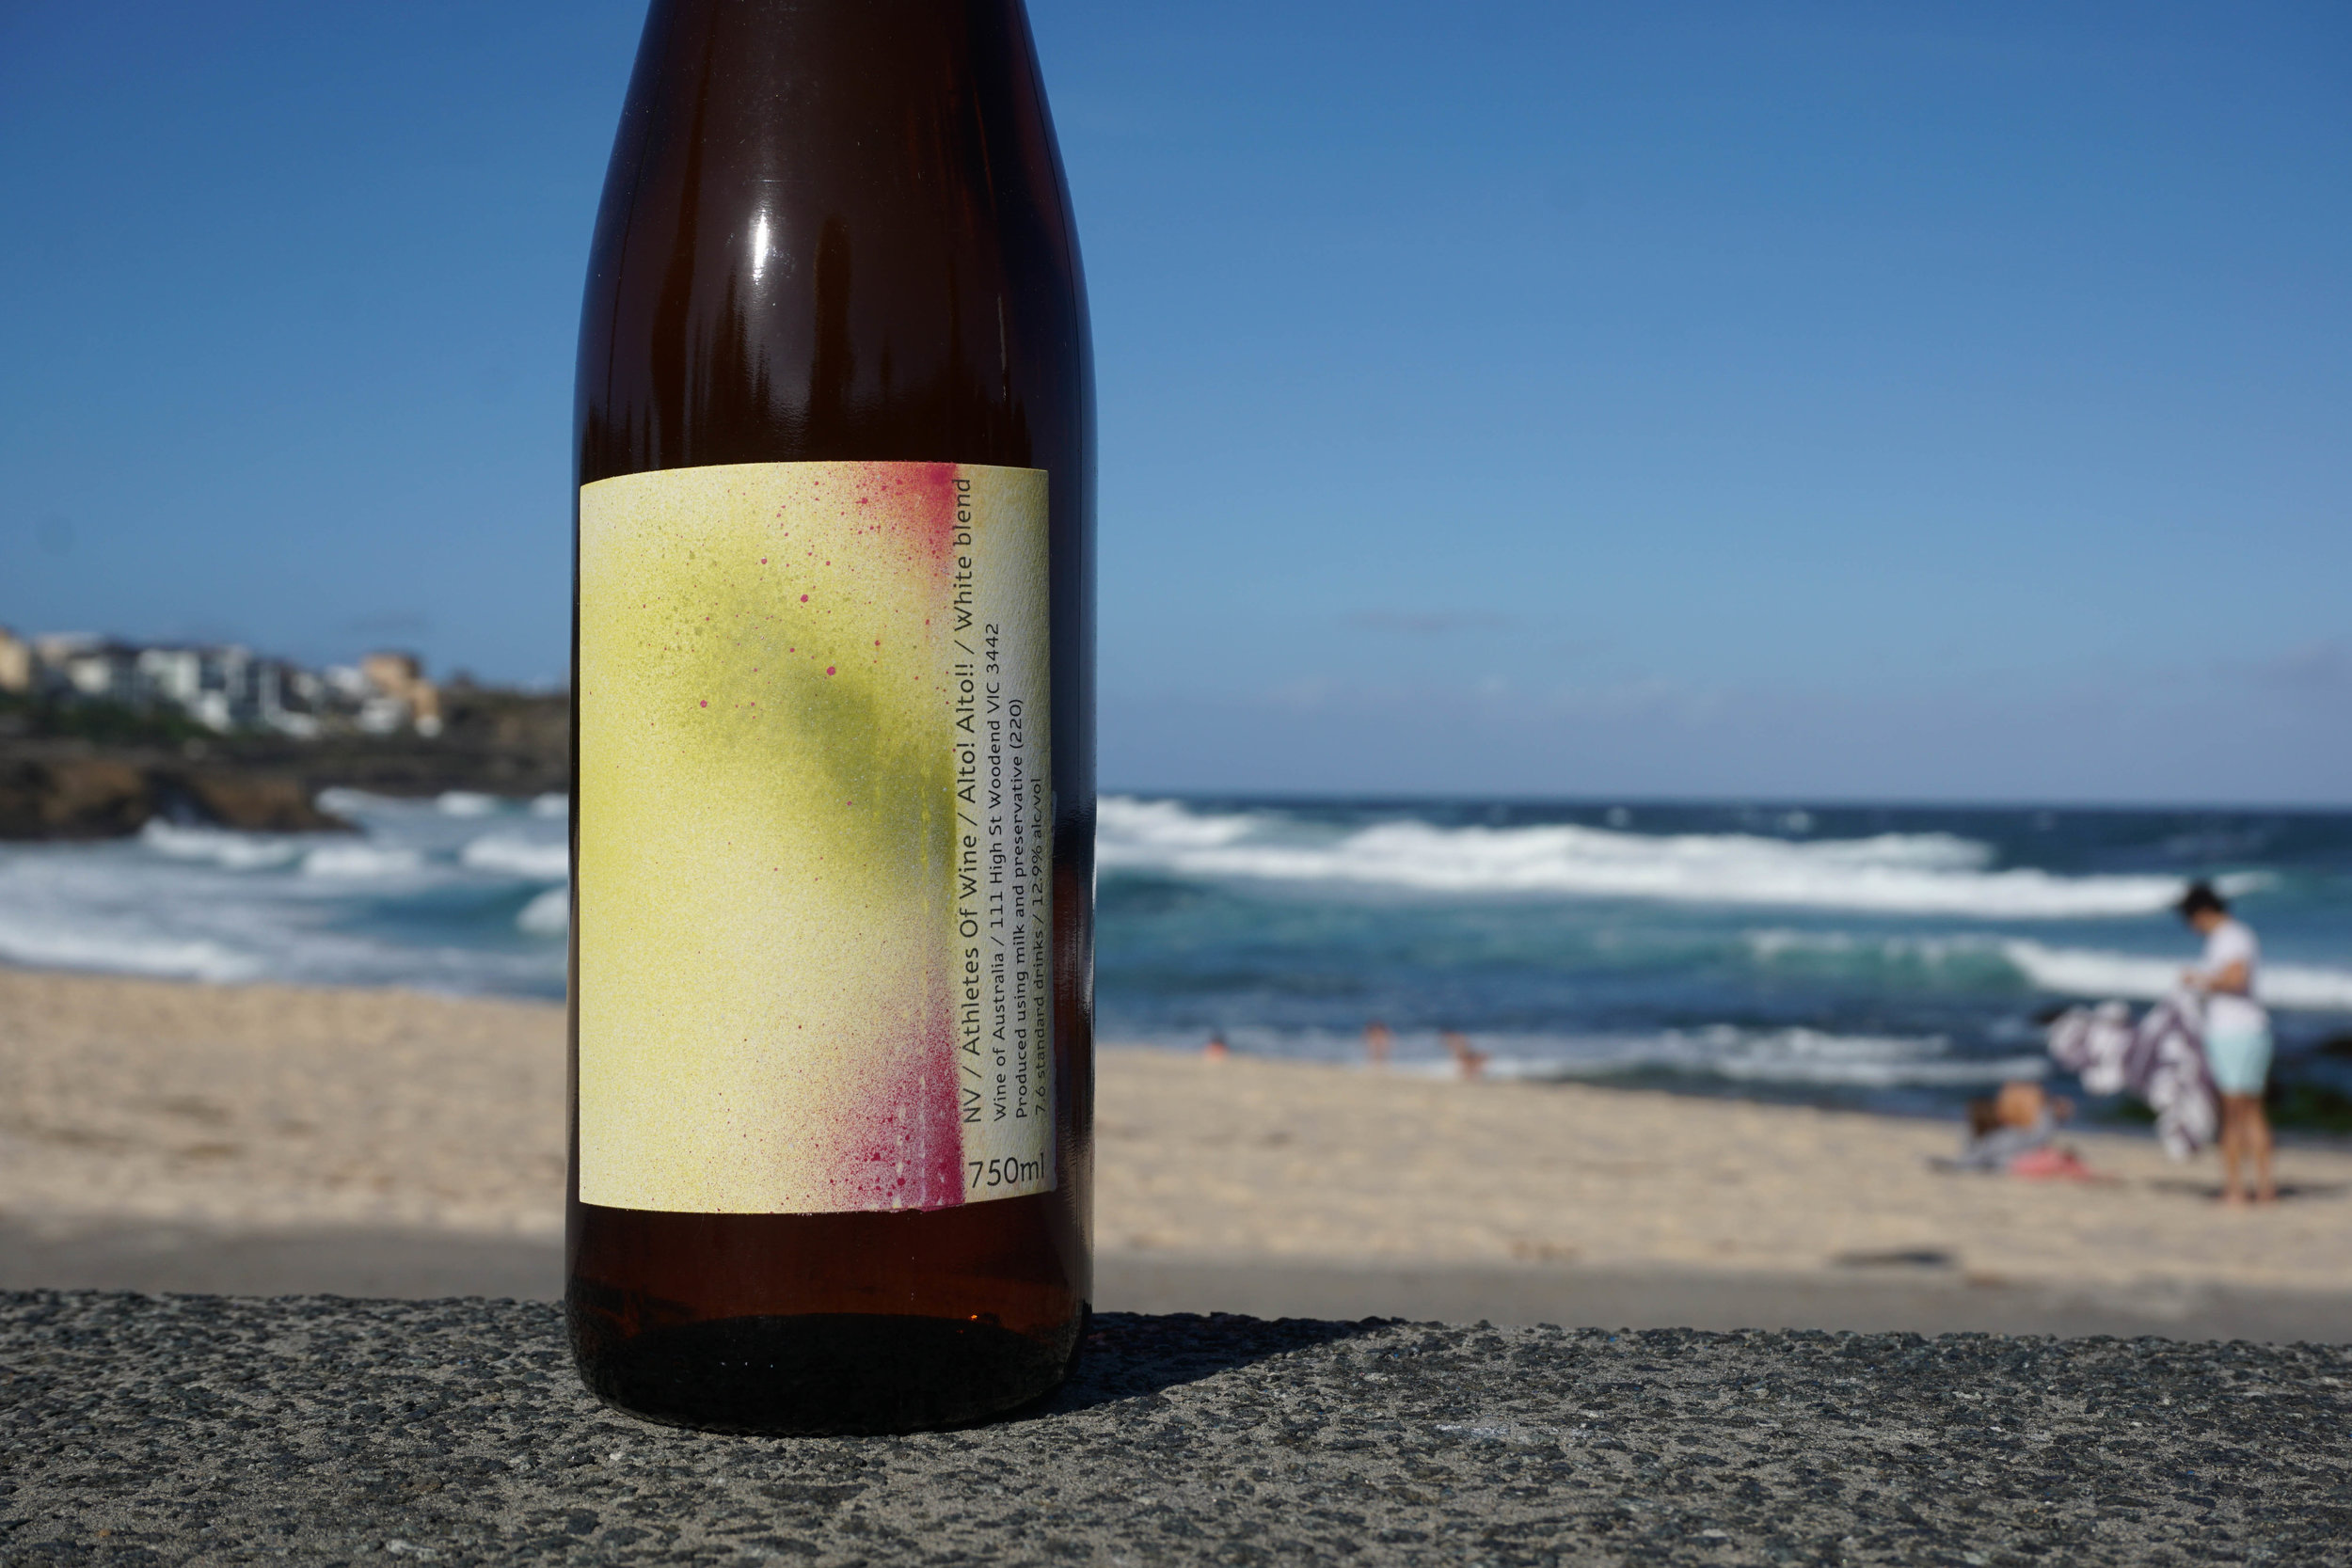 NV Athletes Of Wine 'Alto! Alto!!' White blend  Organic Practices  Varieties: 58% Chardonnay (Kyneton, VIC)/ 29.5% Riesling (Murrumbateman, ACT)/ 12.5% Sauvignon Blanc (Romsey, VIC)  Chardonnay was picked on March 3rd and whole bunch pressed then settled overnight and wild yeast fermented; Riesling (from 2015) was decanted from bottle; Sauvignon Blanc was picked March 12th and thrown in as whole bunches, plunged sometimes and left in there for 8 months; all stainless steel; no malo; bottled unfined and lightly filtered. 40ppm total SO2 added at bottling.  Total production: 128 dozen